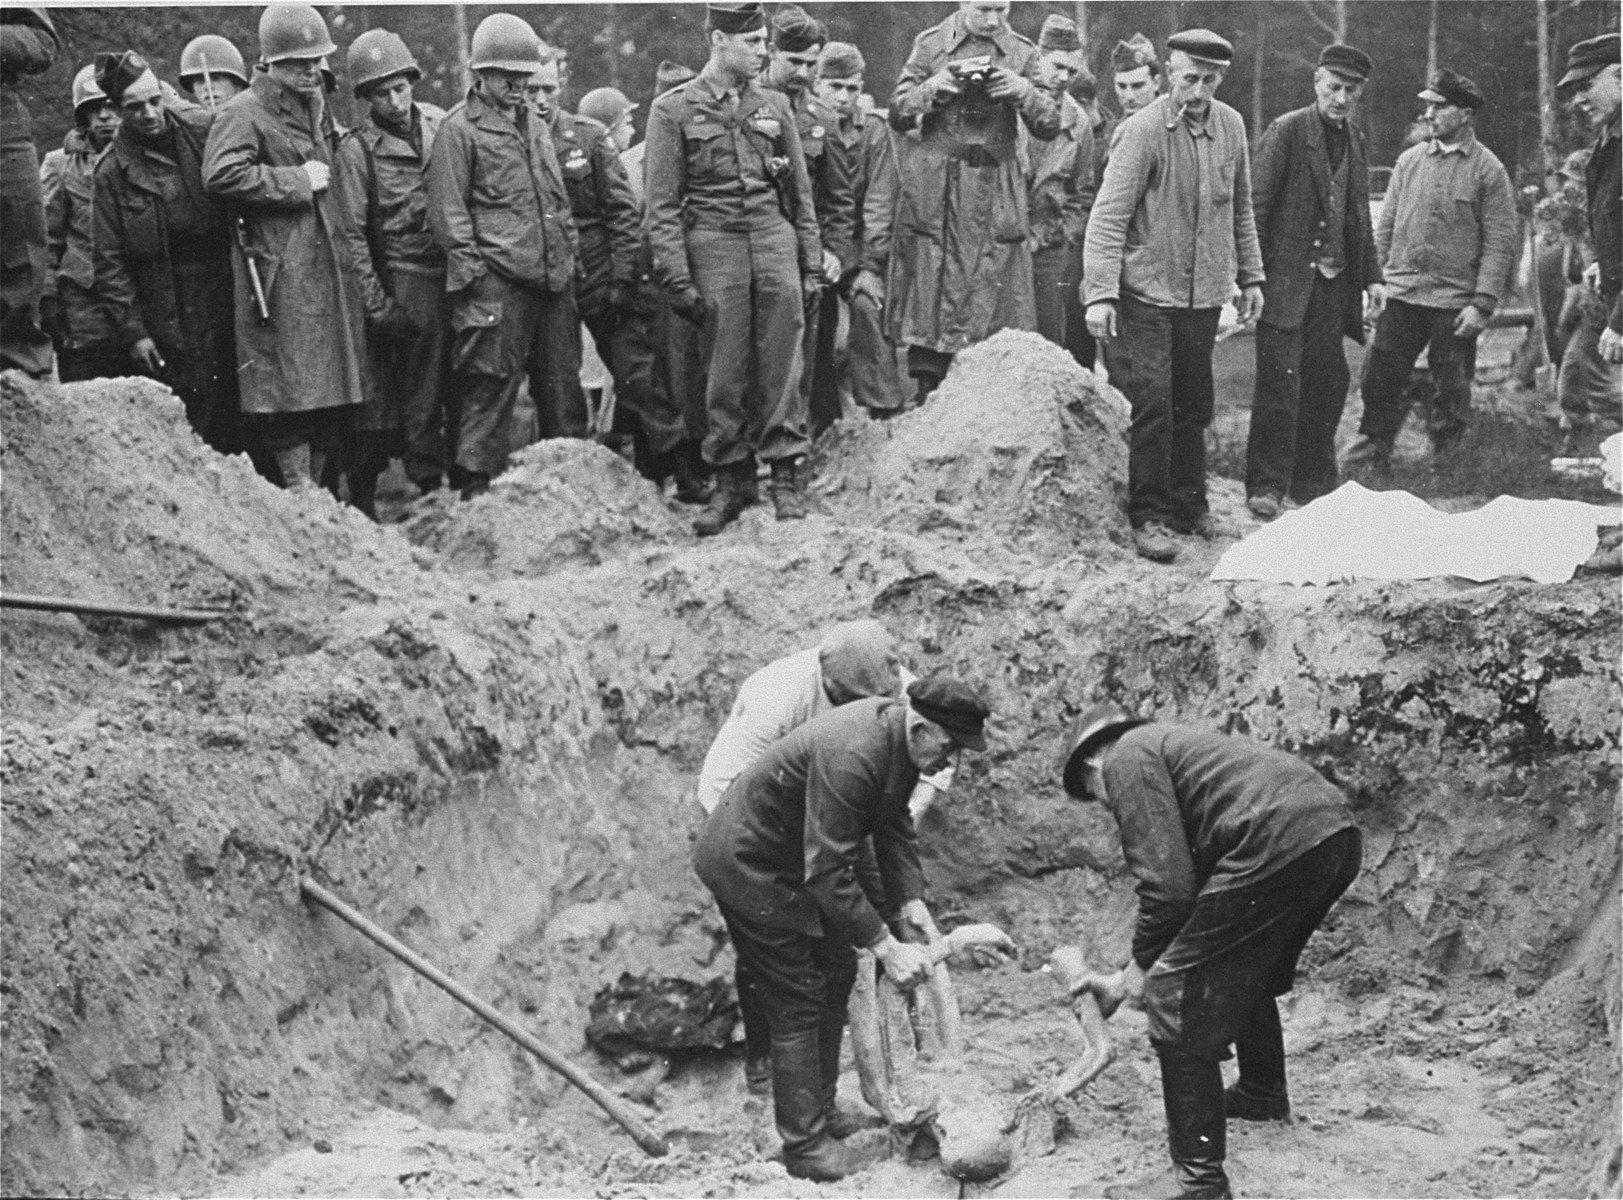 "American troops with the 82nd Airborne Division look on as German exhume corpses from a mass grave.   The original Signal Corps caption ""NEW NAZI HORROR CAMP DISCOVERED.  One of the worst Nazi concentration camps uncovered by Allied troops was liberated at Wobbelin, Germany, a small town five miles north of Ludwigslust and 90 miles northwest of Berlin.  Soldiers of three Allied units -- the 82nd U.S. Airborne Division, the Eighth Infantry Division of the Ninth U.S. Army and airborne troops of the Second British Army -- entered the camp and found sick, starving inmates barely surviving under indescribable conditions of filth and squalor.  They found hundreds of dead prisoners in one of the buildings while outside, in a yard, hundreds more  were found hastily buried in huge pits.  One mass grave contained 300 emaciated, disfigured corpses.  The dead included Poles, Russians, Frenchmen, Belgians, Dutchmen and Germans, all of whom had been working as slave laborers for the Nazis.  It is estimated that at least 150 of the original 4,000 prisoners succumbed daily, mostly from starvation and savage treatment at the hands of Nazi SS troops who operated the camp.   Some of the bodies found were burned almost beyond recognition and systematic torture of the inmates was revealed by the  physical condition of most of the survivors.  Military Government officers immediately ordered leading citizens of nearby Ludwigslust and other towns to march through the camp and witness the atrocities committed by representatives of the German Government.  Most of the civilians disclaimed any knowledge of the camp's existence despite the fact that many of the prisoners worked in the area.  The local residents later were made to exhume the bodies from the mass graves at the camp and provide decent, respectable interment of all dead prisoners.  Two hundred were buried in the public square of Ludwigslust May 7, 1945, and an equal number were buried in the garden of the highest Nazi official of Hagenow.  Eighty more were laid to rest in the town of Schwerin.  BIPPA                                                          EA 66636  THIS PHOTO SHOWS:  German civilians of Ludwigslust and nearby communities are forced to exhume the bodies of the Nazi atrocity victims from a mass ... Wobbelin concentration camp.  These ... reburied the victims in the town ... gslust.  Troops of the 82nd U.S. ... witness and direct the proceedings ... Photo ETO-..."""